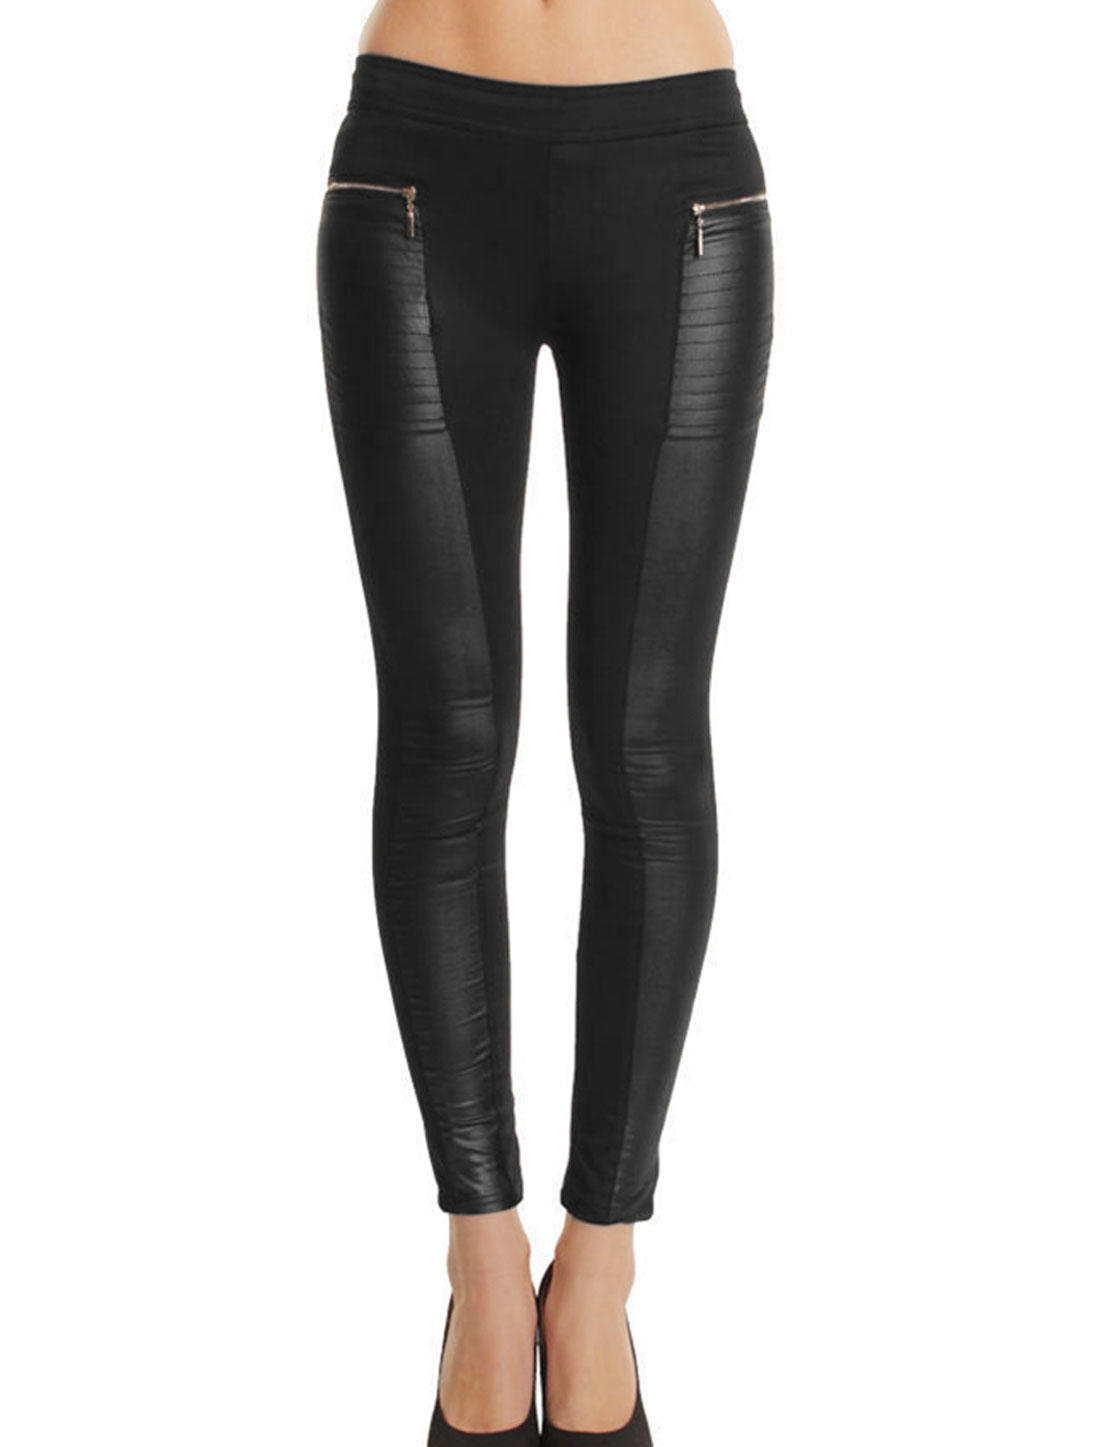 Women Elastic Waist Imitation Leather Panel Leisure Leggings Black M